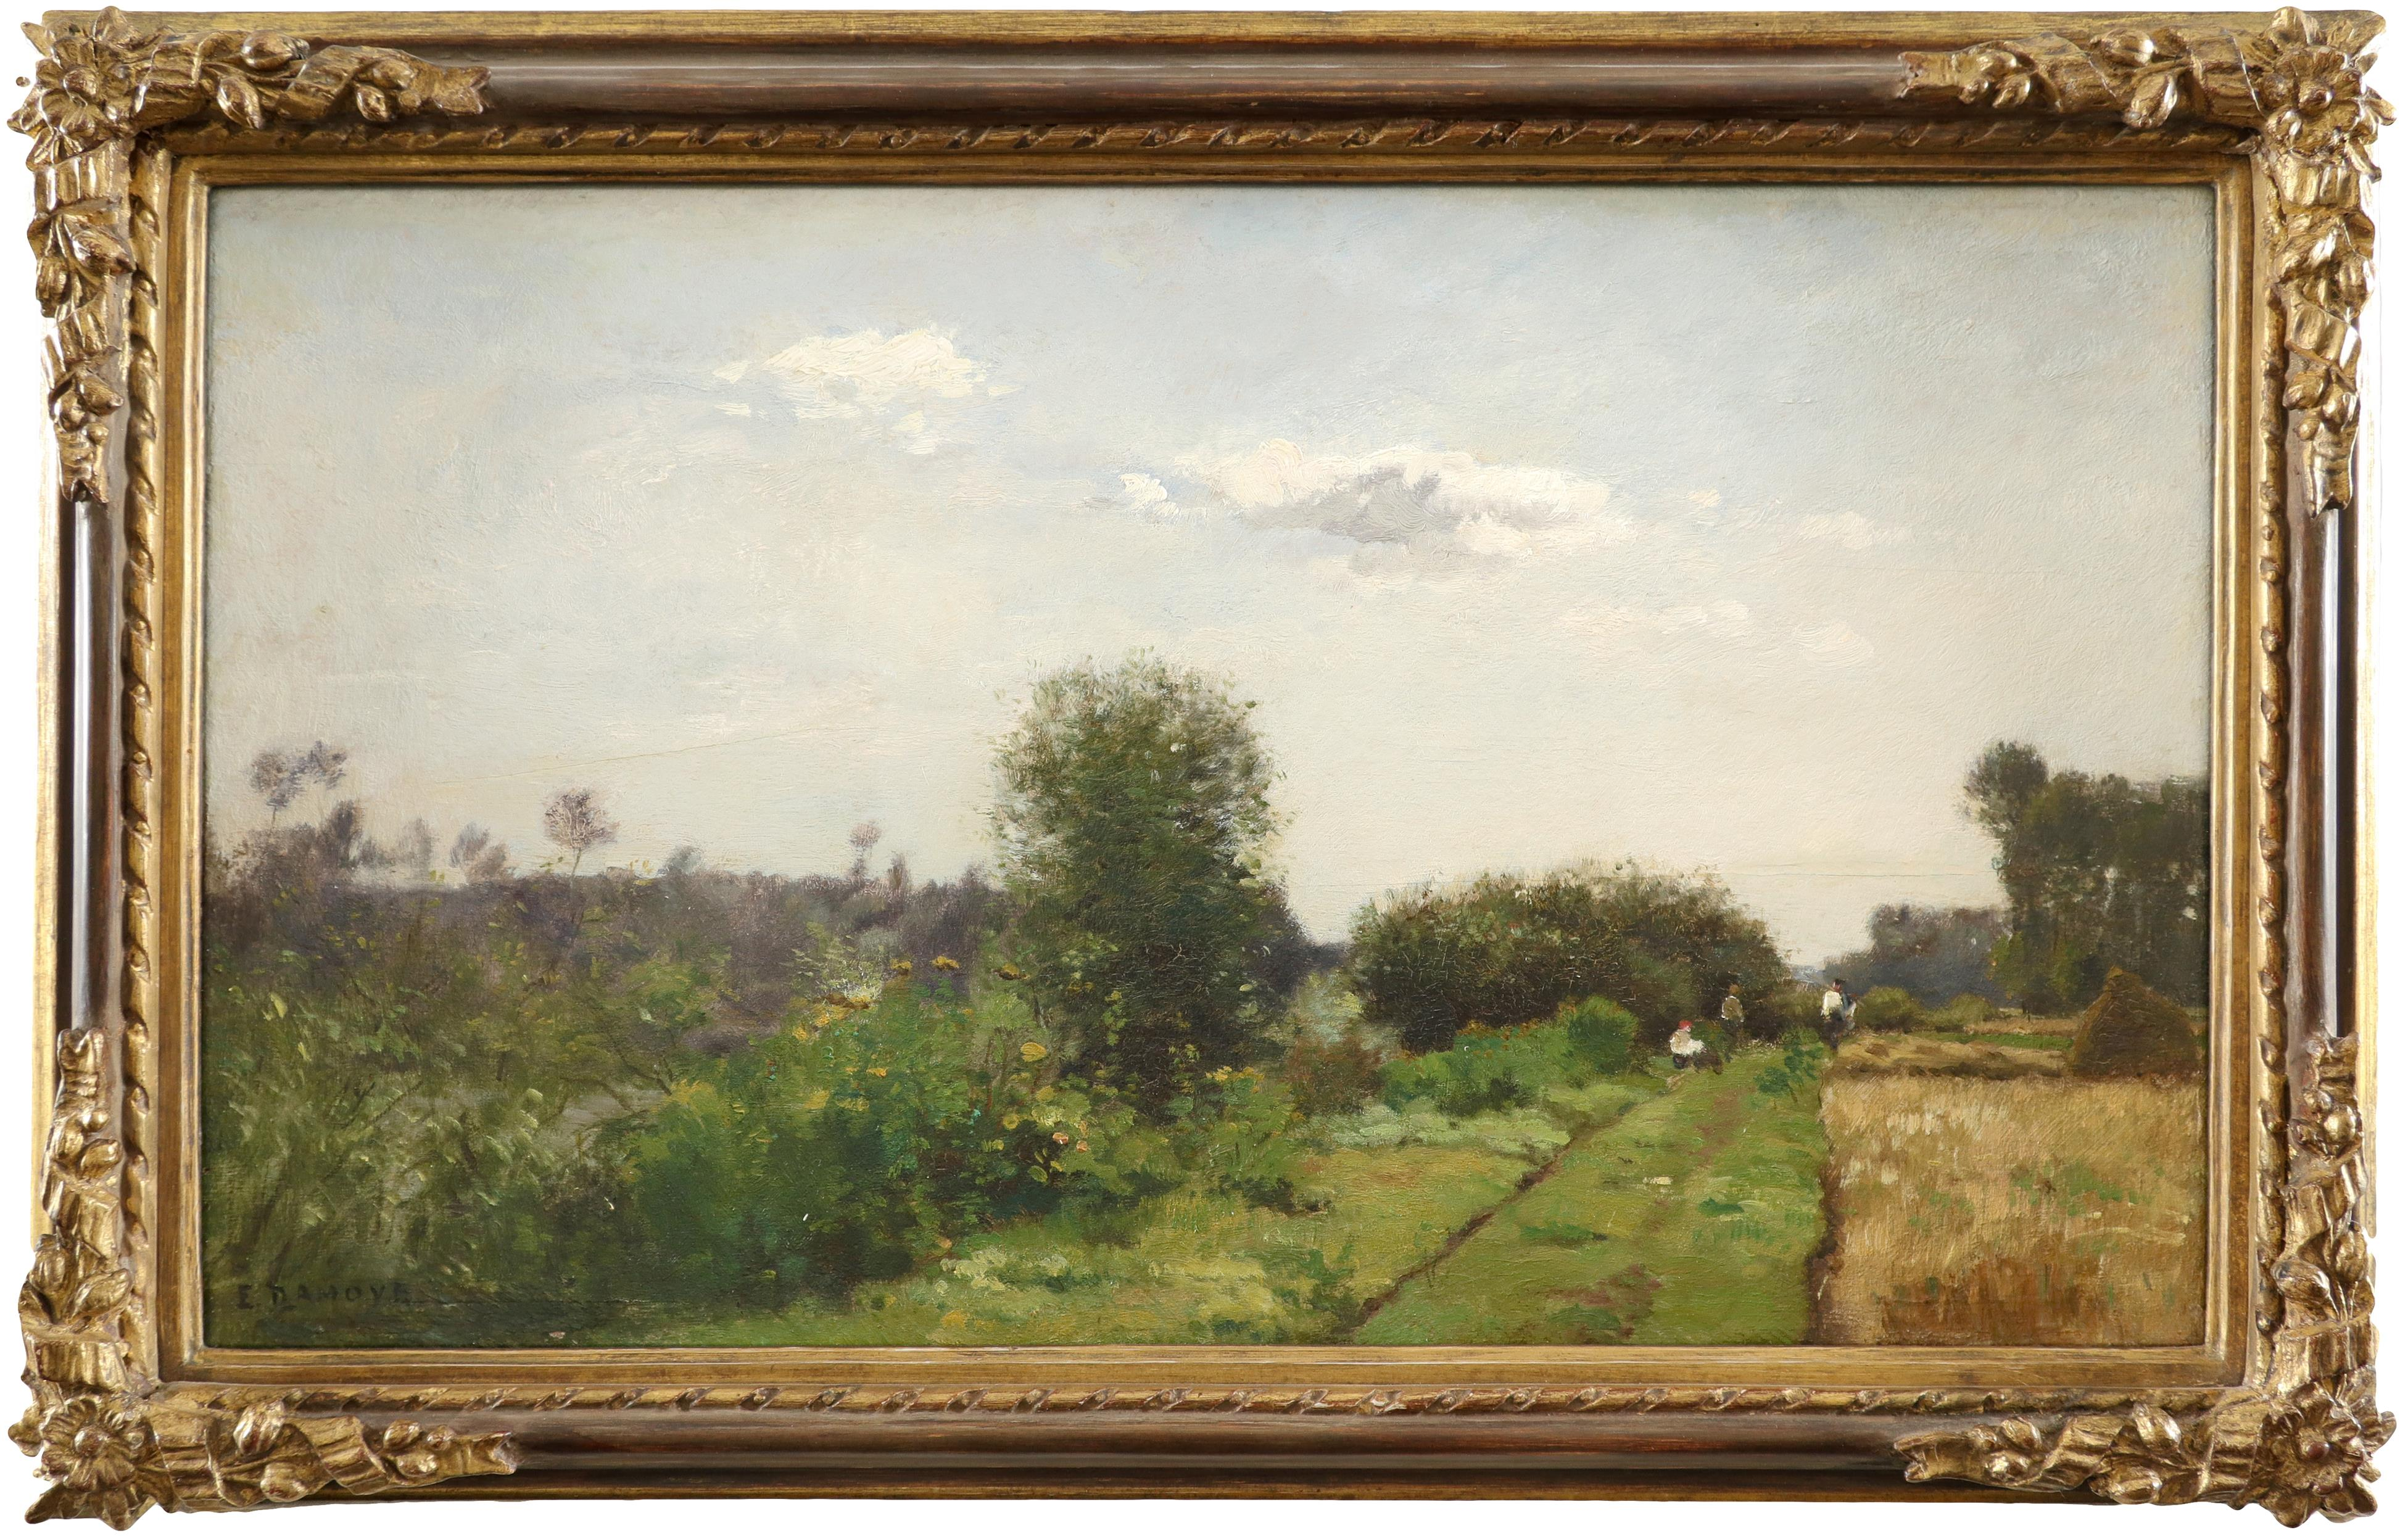 Pierre Emmanuel Damoye (French 1847-1916) Landscape with figures by a wheat field Signed E DAMOYE ( - Image 2 of 3